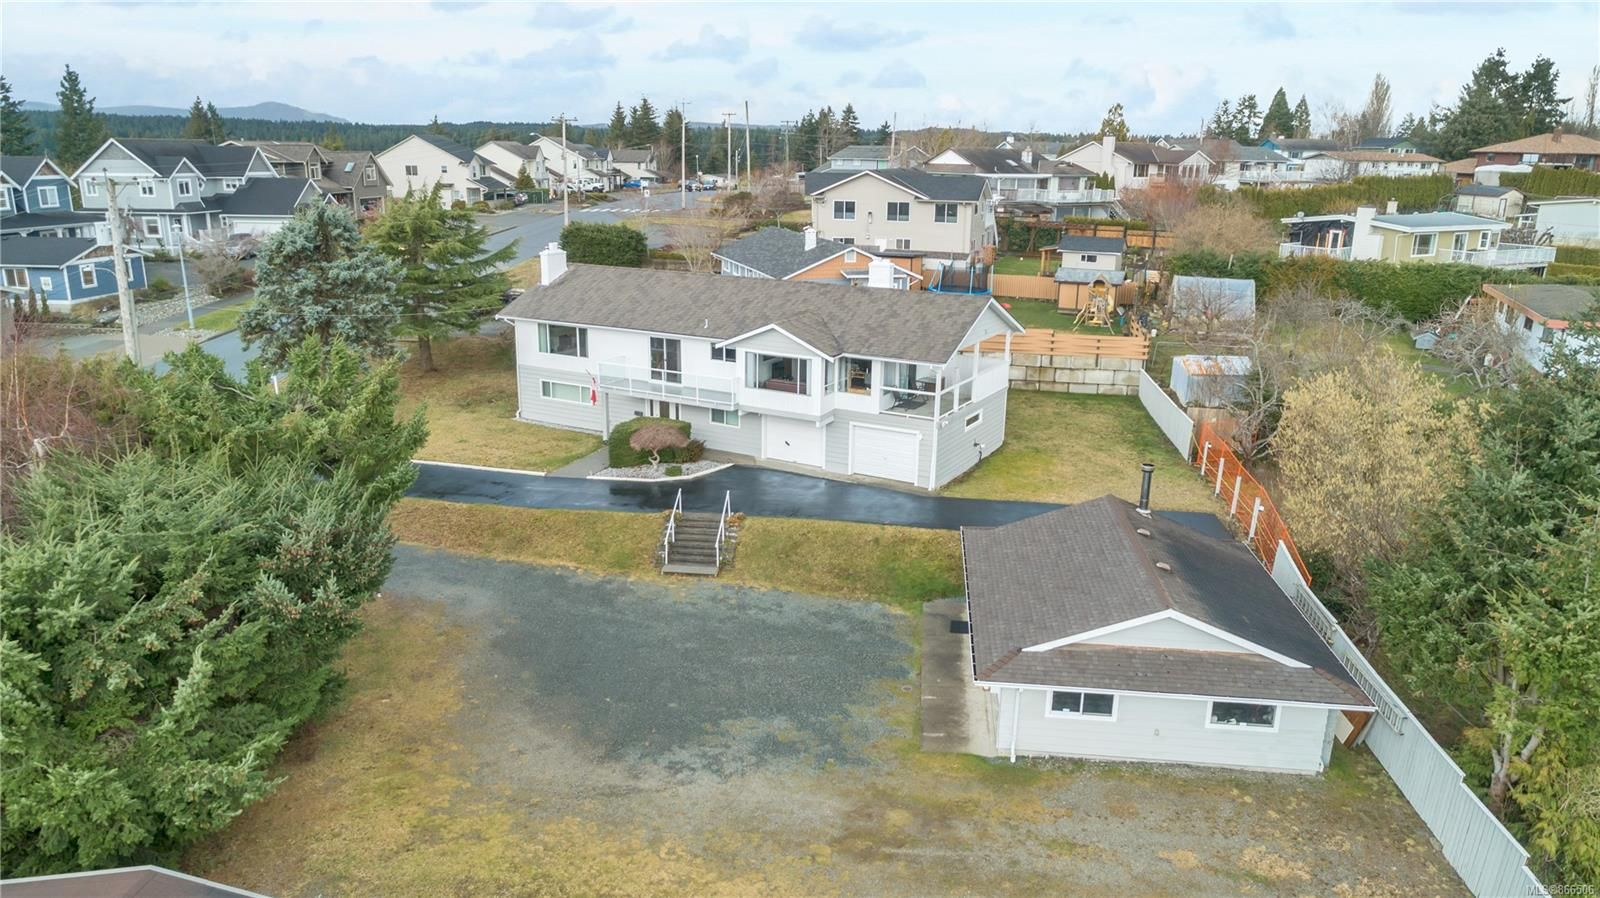 Main Photo: 330 Niluht Rd in : CR Campbell River Central House for sale (Campbell River)  : MLS®# 866506